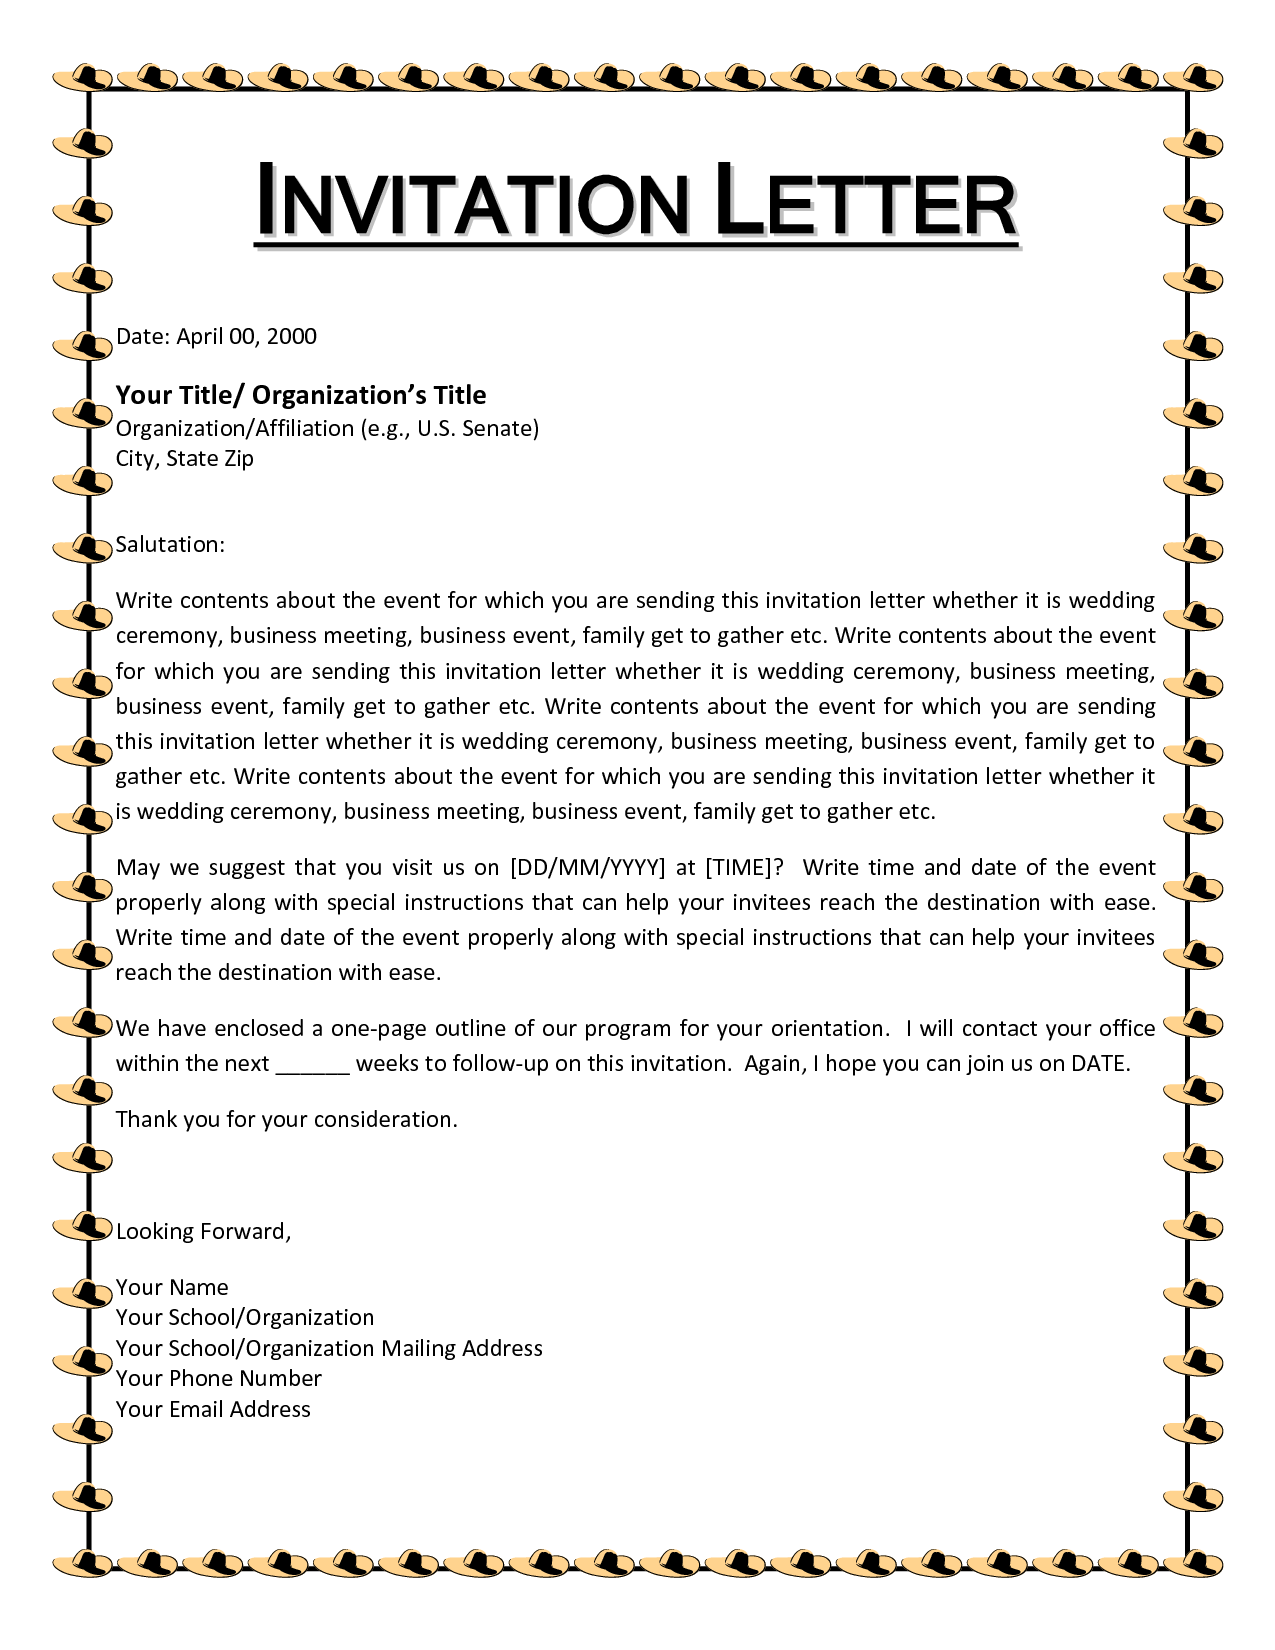 5 New Sample Letter To Invite Someone To Visit Usa